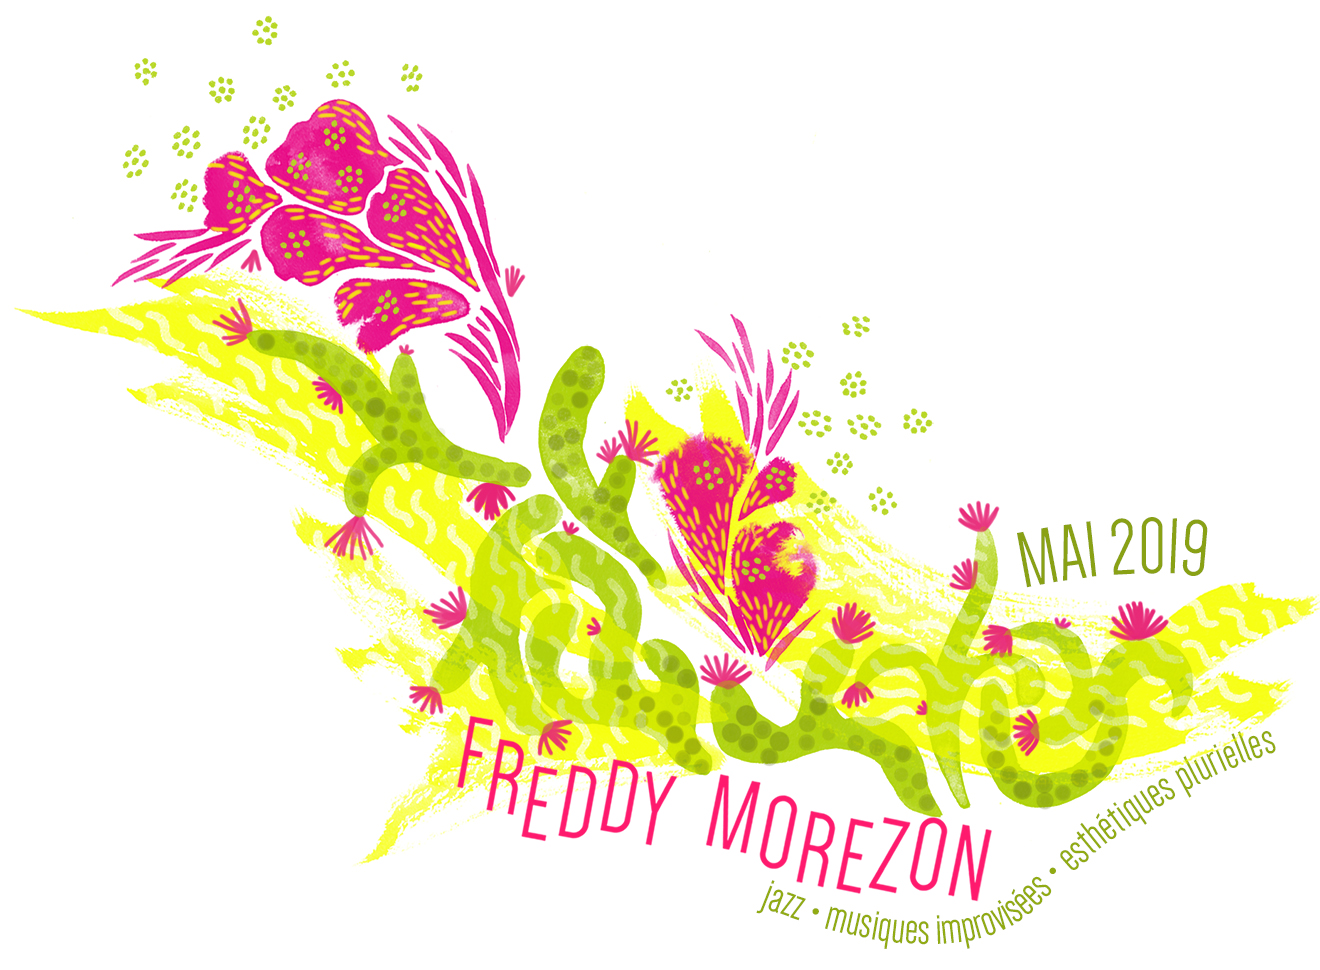 Freddy Morezon - Newsletter mai 2019